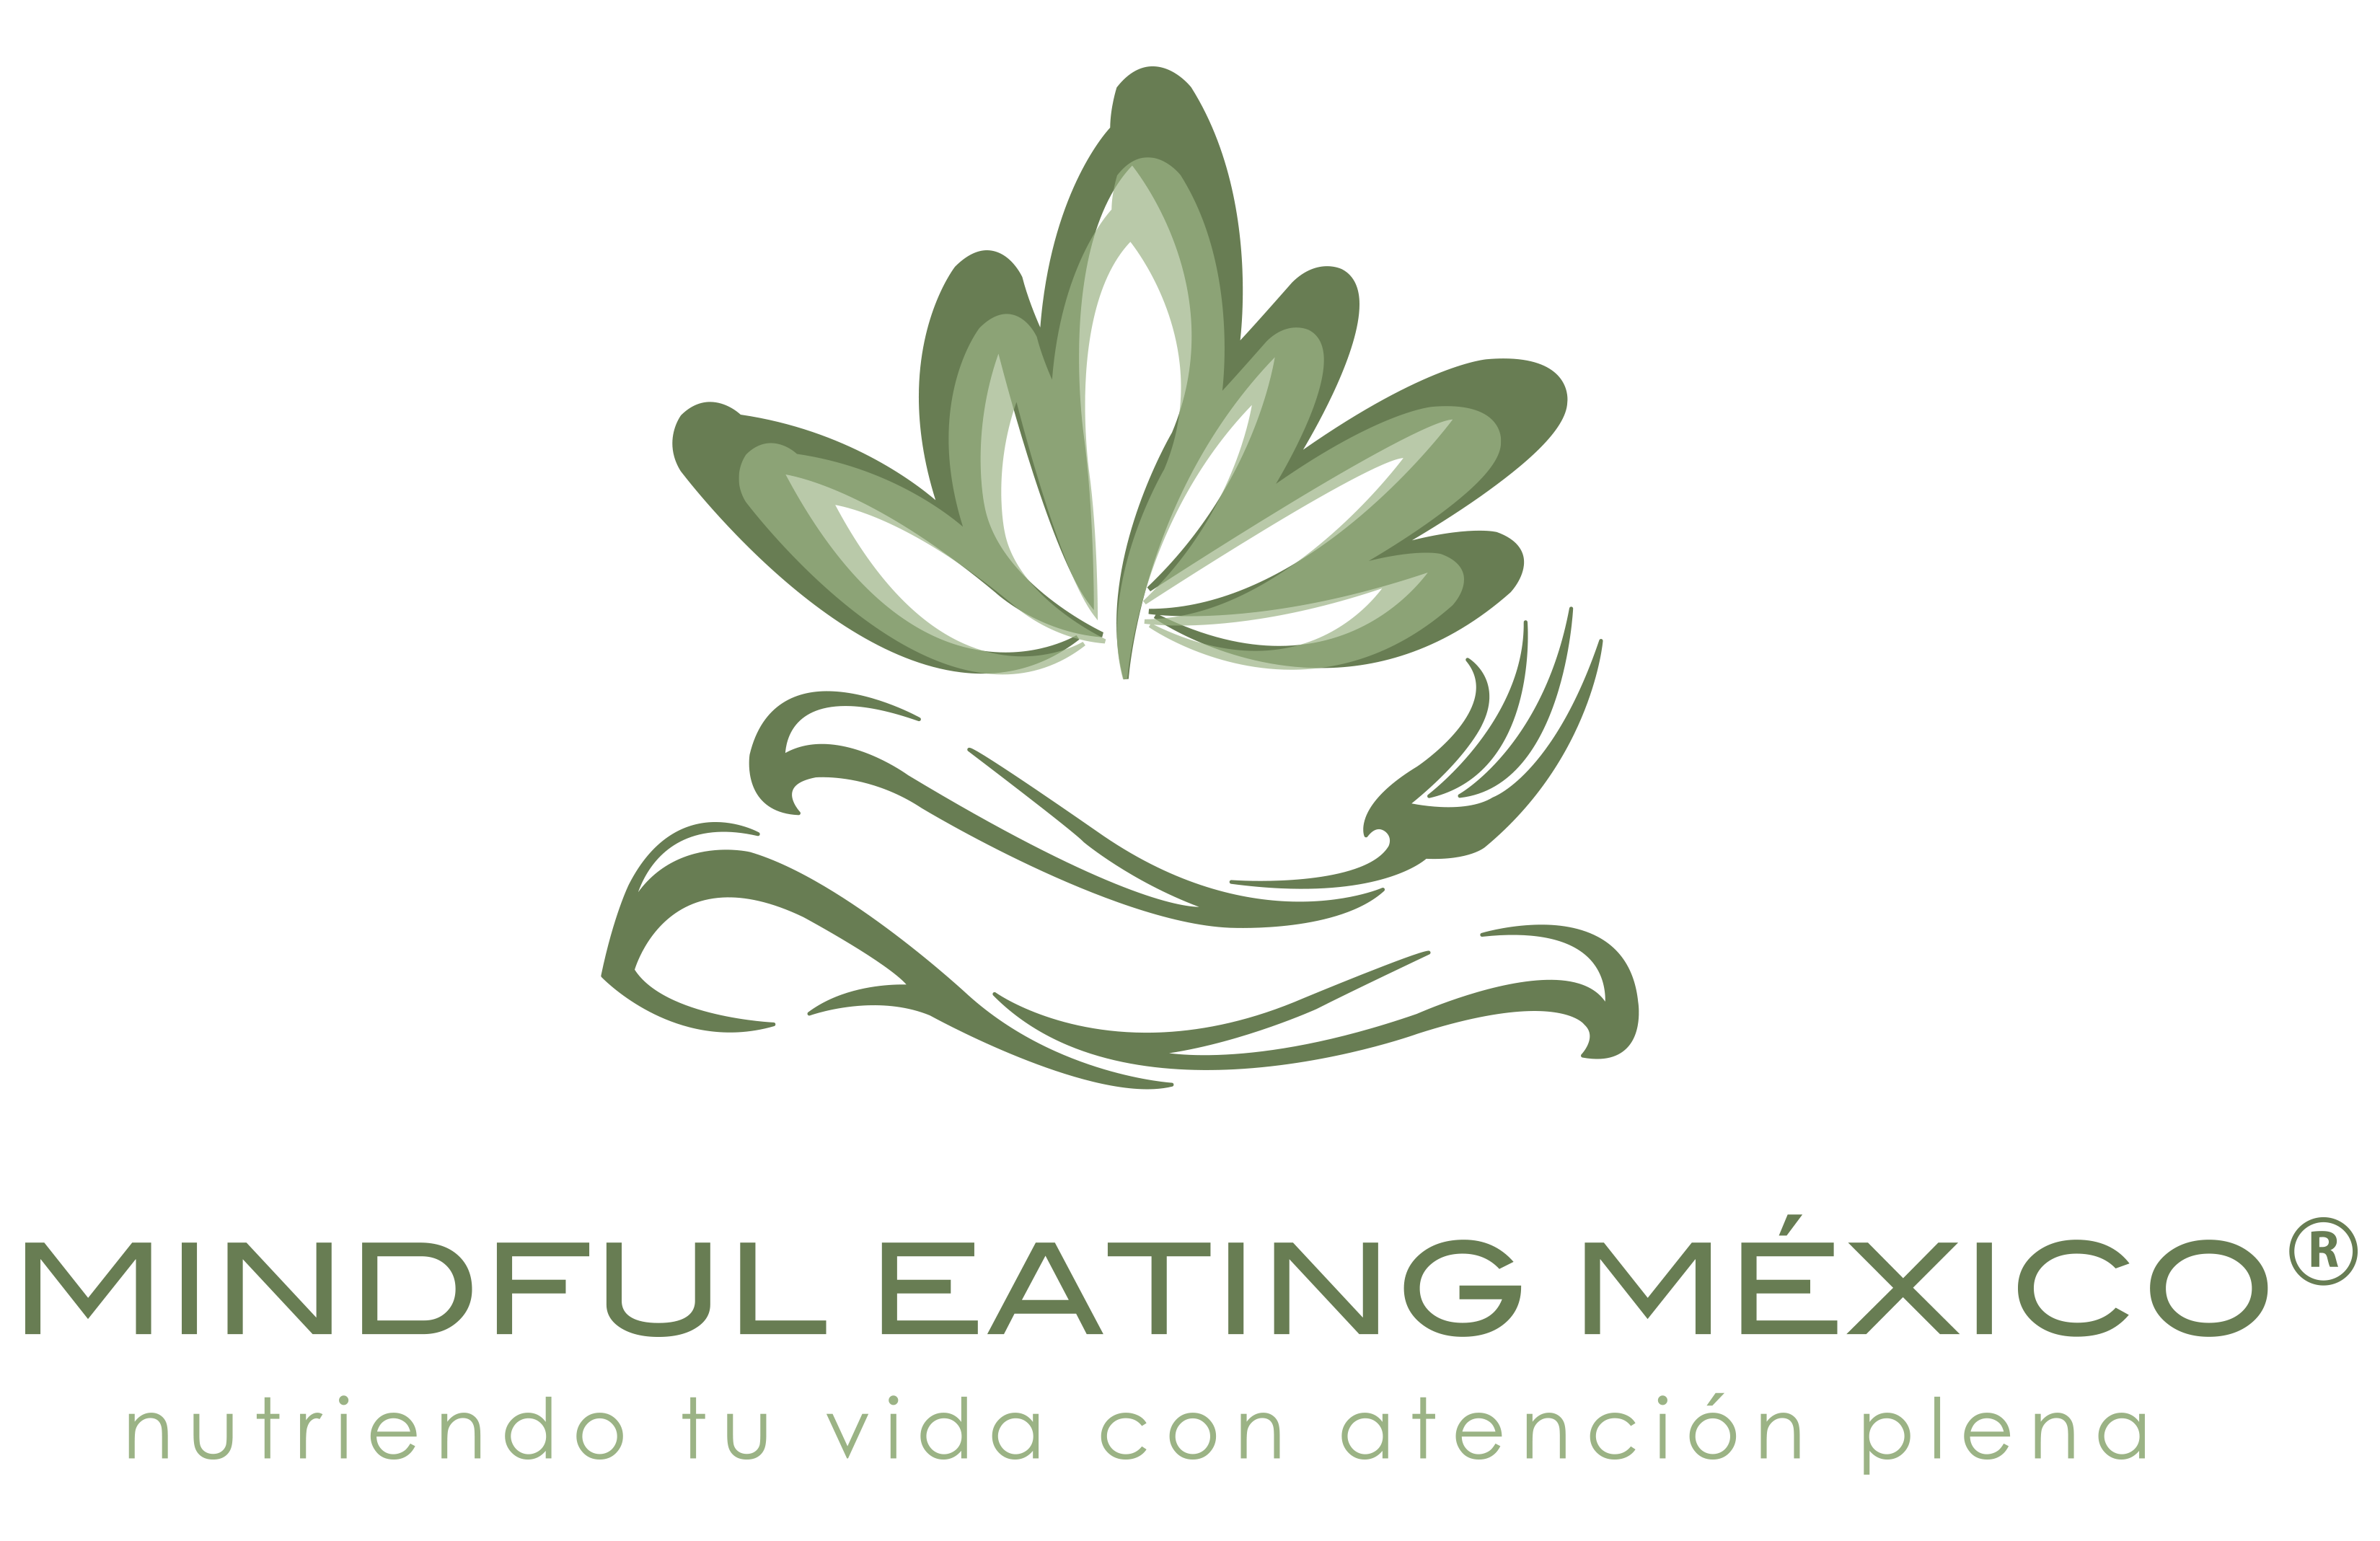 mindful-eating-mexico